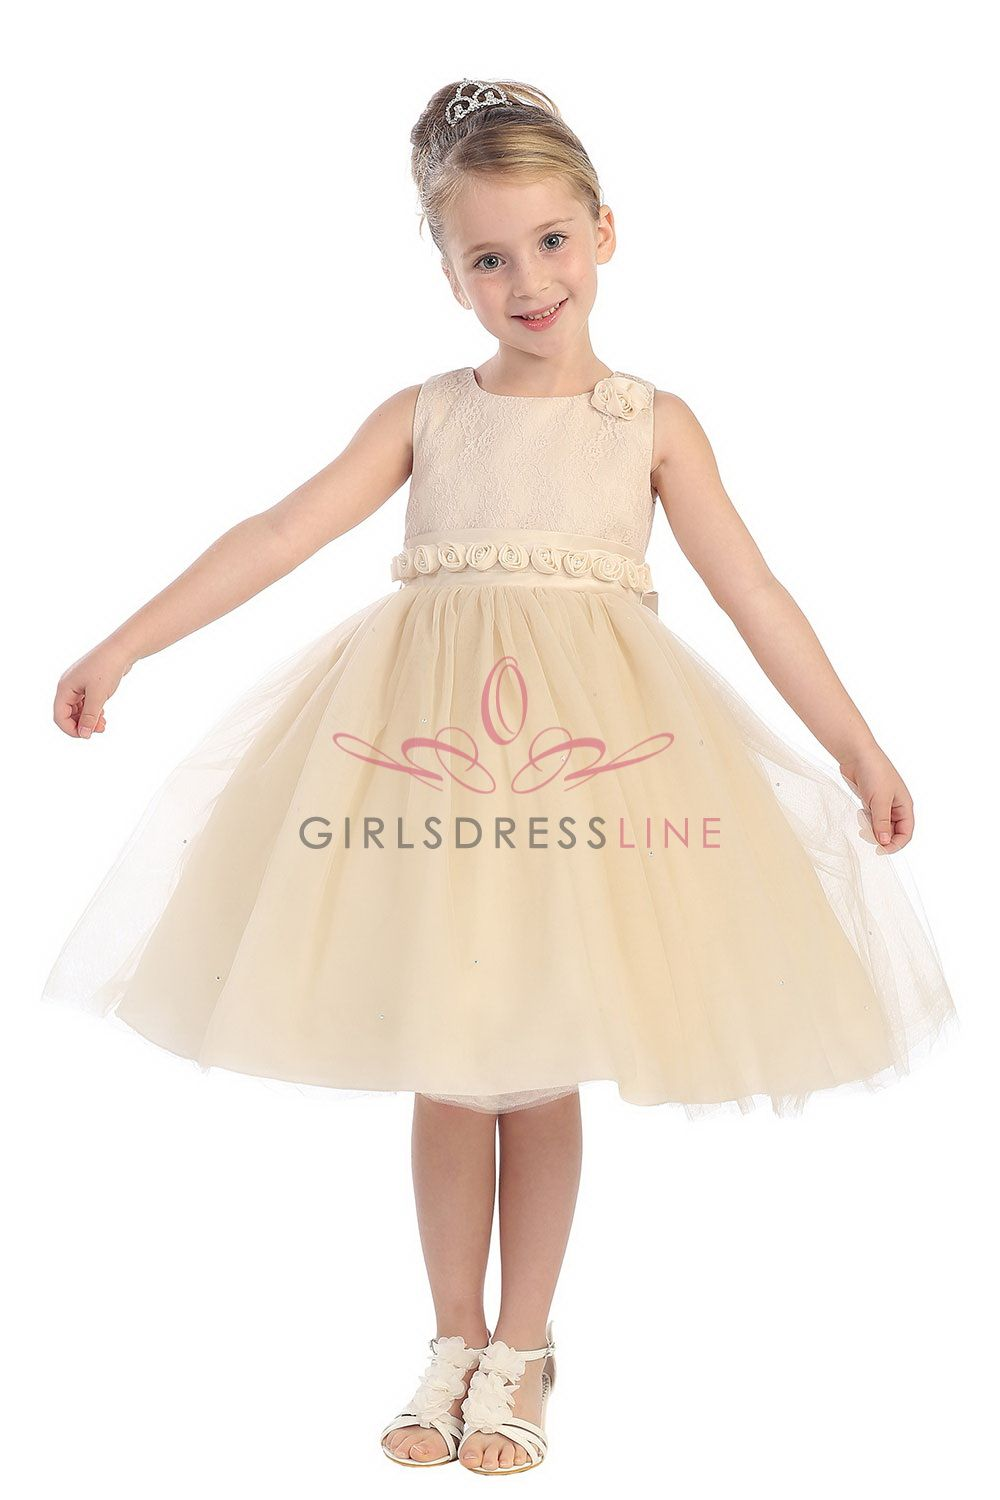 Champagne Sleeveless Lace Bdice Tulle Dress with Rosetti Detail T5584-CH T5584-CH $55.99 on www.GirlsDressLine.Com